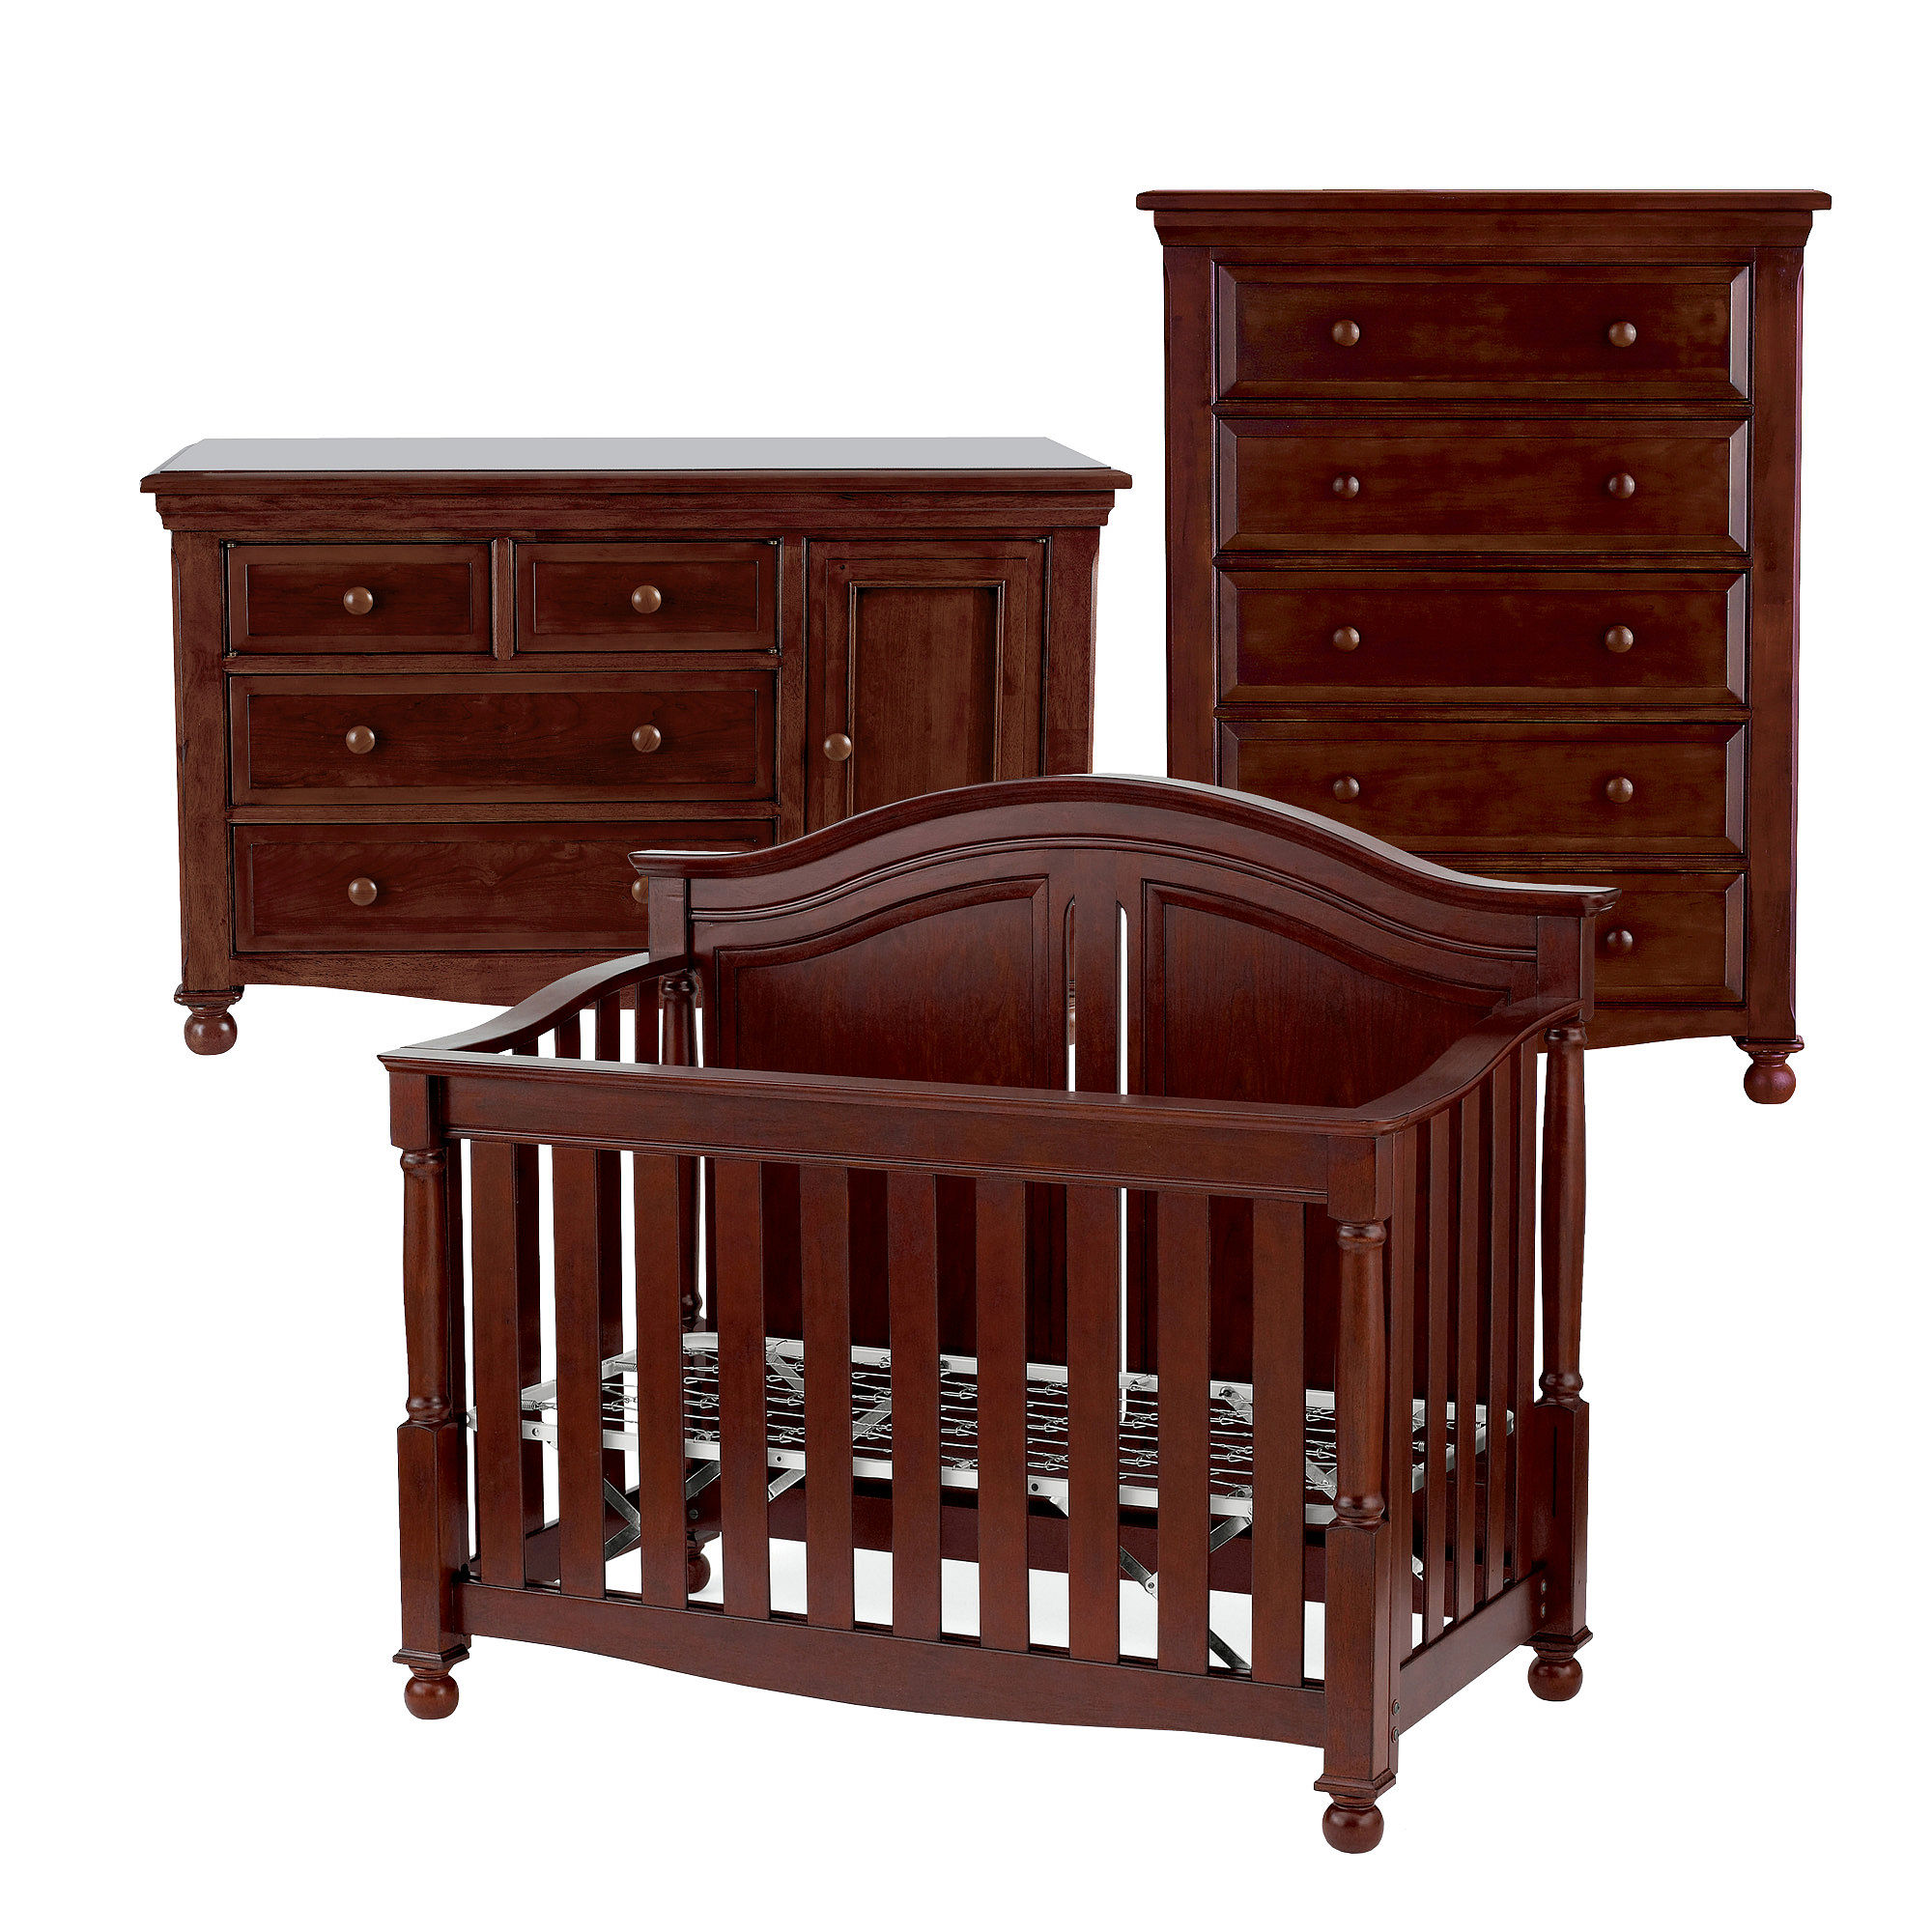 baby cribs best furniture design ideas jcpenney jcpenny with changing tables minnie mouse crib table attached star wars bedding sets carters accent couch ping dale tiffany